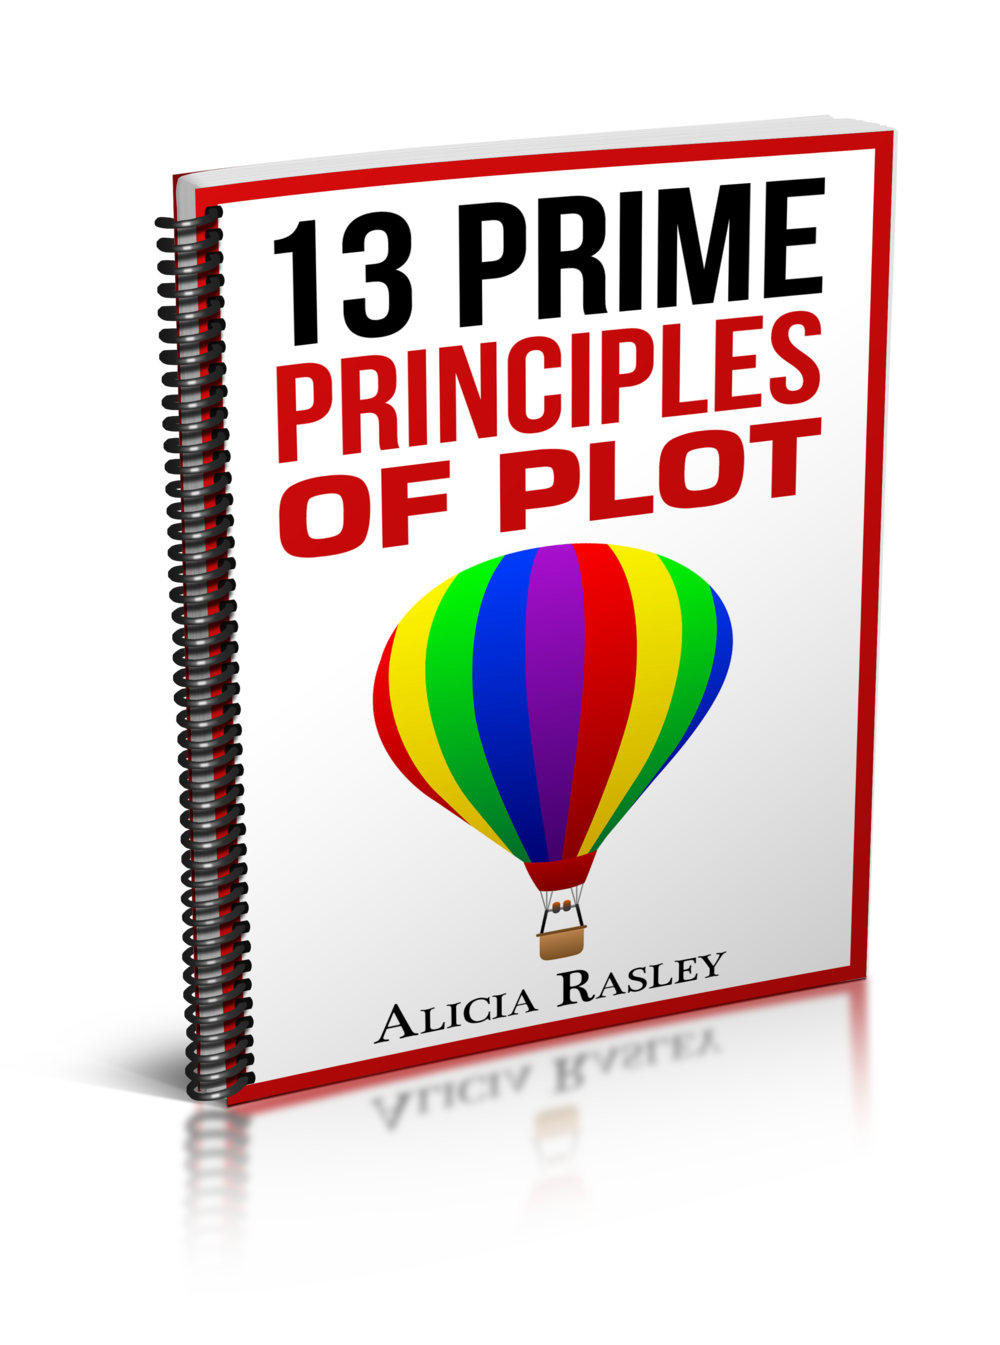 GET THIS FREE BOOKLET ABOUT PLOTTING!Get this plot e-book now! Just click here to join the mailing list. -